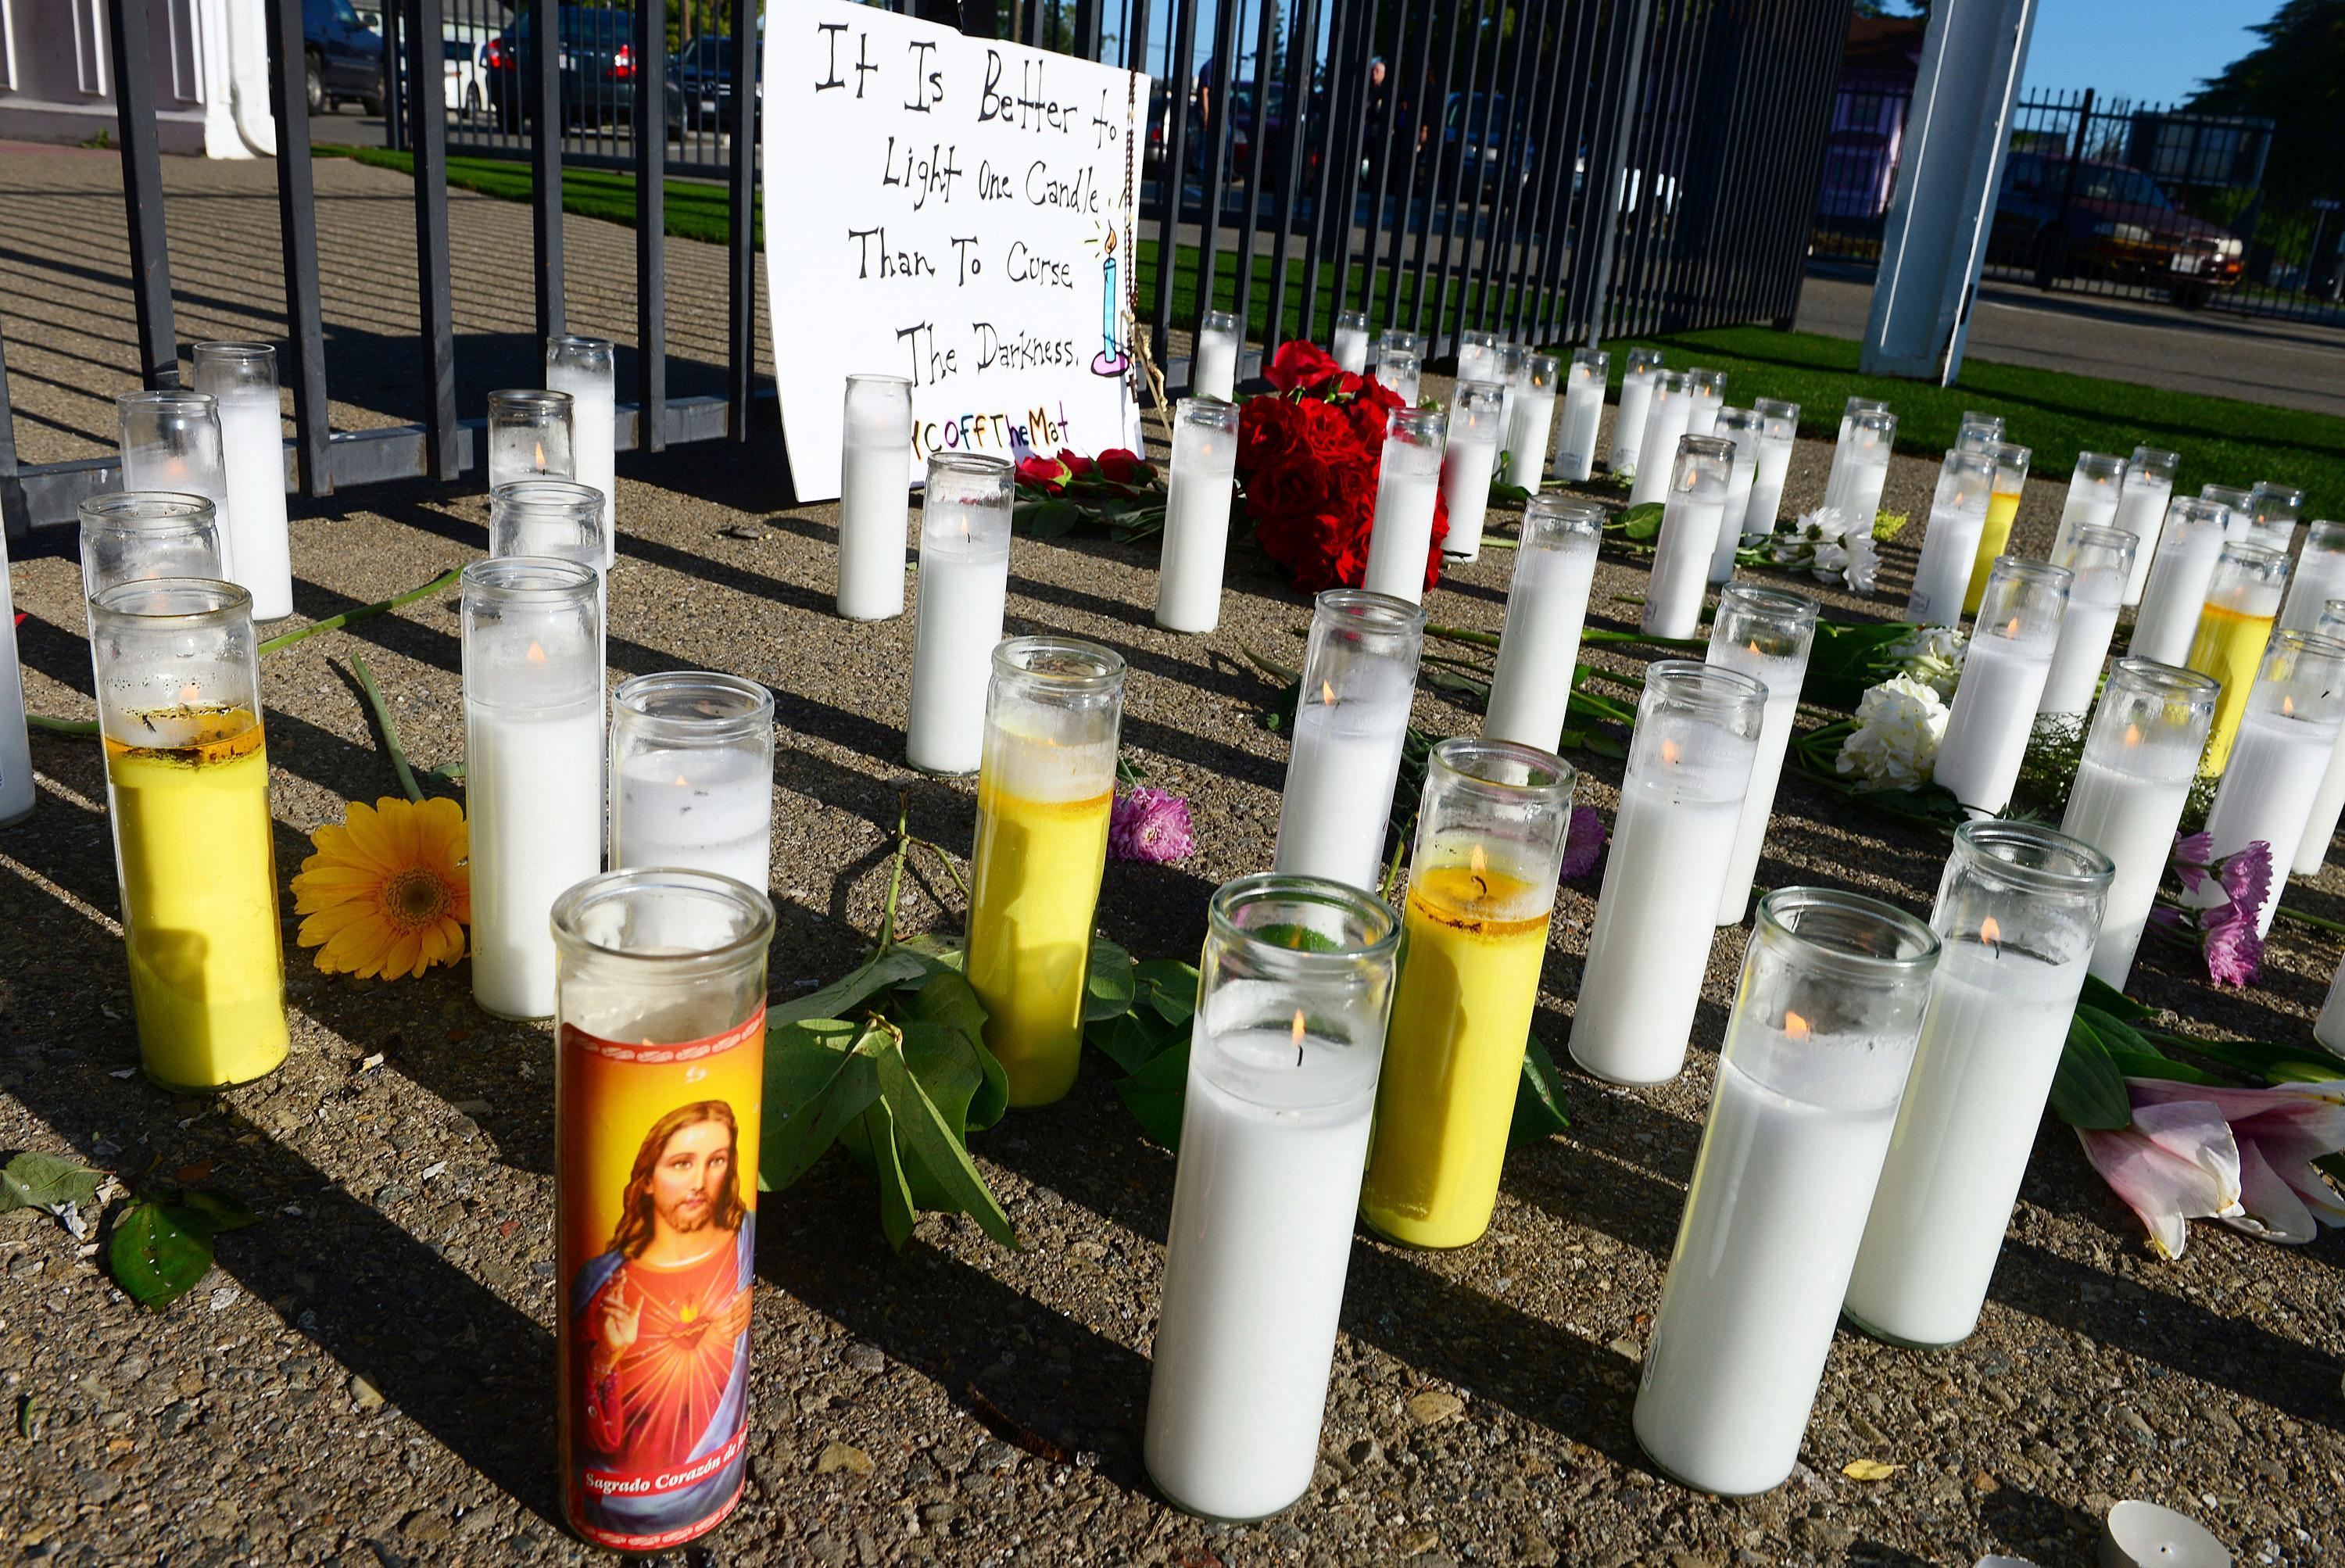 A memorial of candles and flowers grows at the scene of Tuesday's triple homicide shooting near Catholic Charities in downtown Fresno, Calif., on Wednesday, April 19, 2017. (Craig Kohlruss /The Fresno Bee via AP)